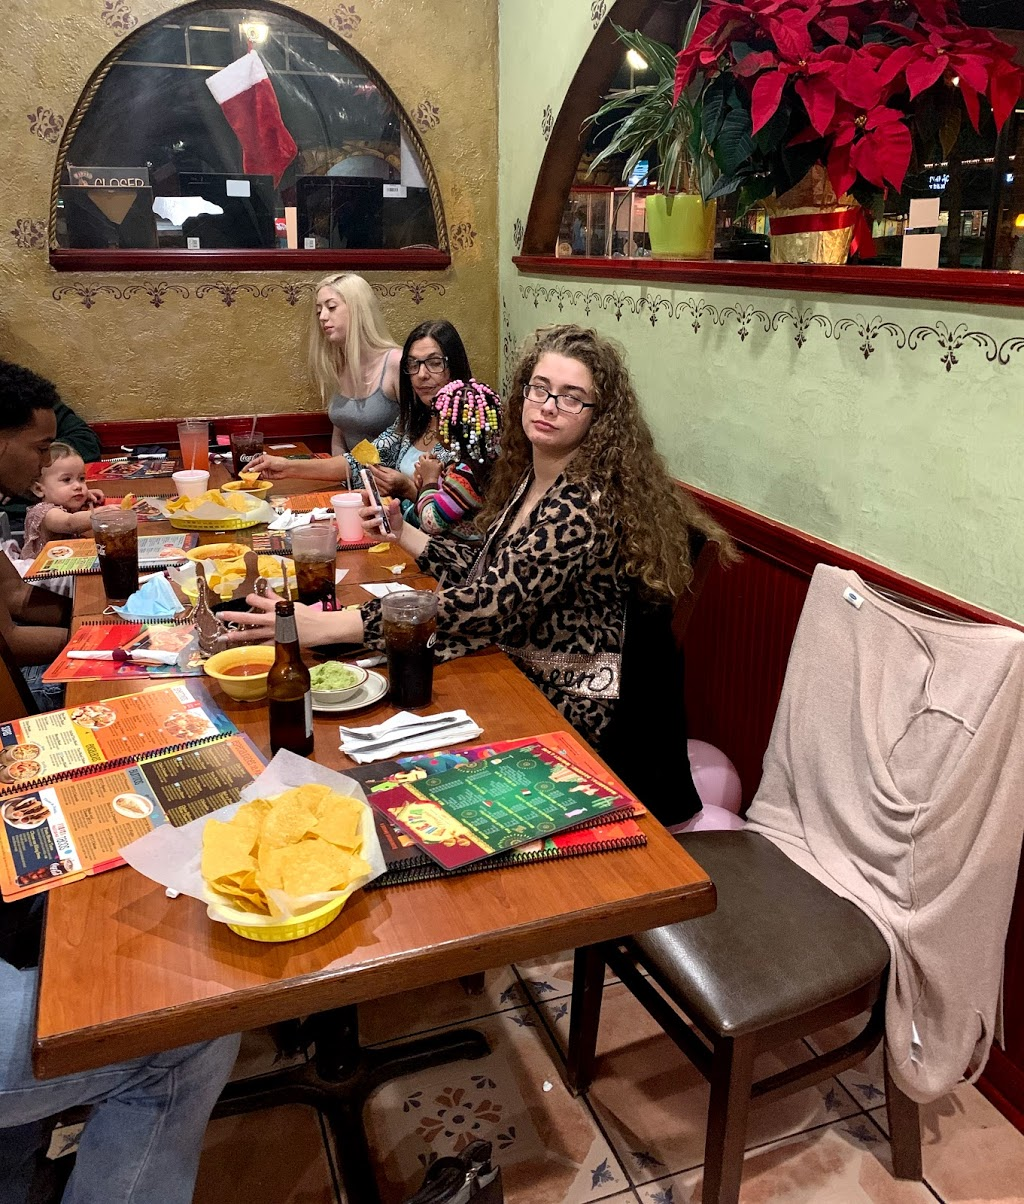 Fiesta Mexicana NC Cary - restaurant  | Photo 10 of 10 | Address: 2839 Jones Franklin Rd, Raleigh, NC 27606, USA | Phone: (919) 859-1303